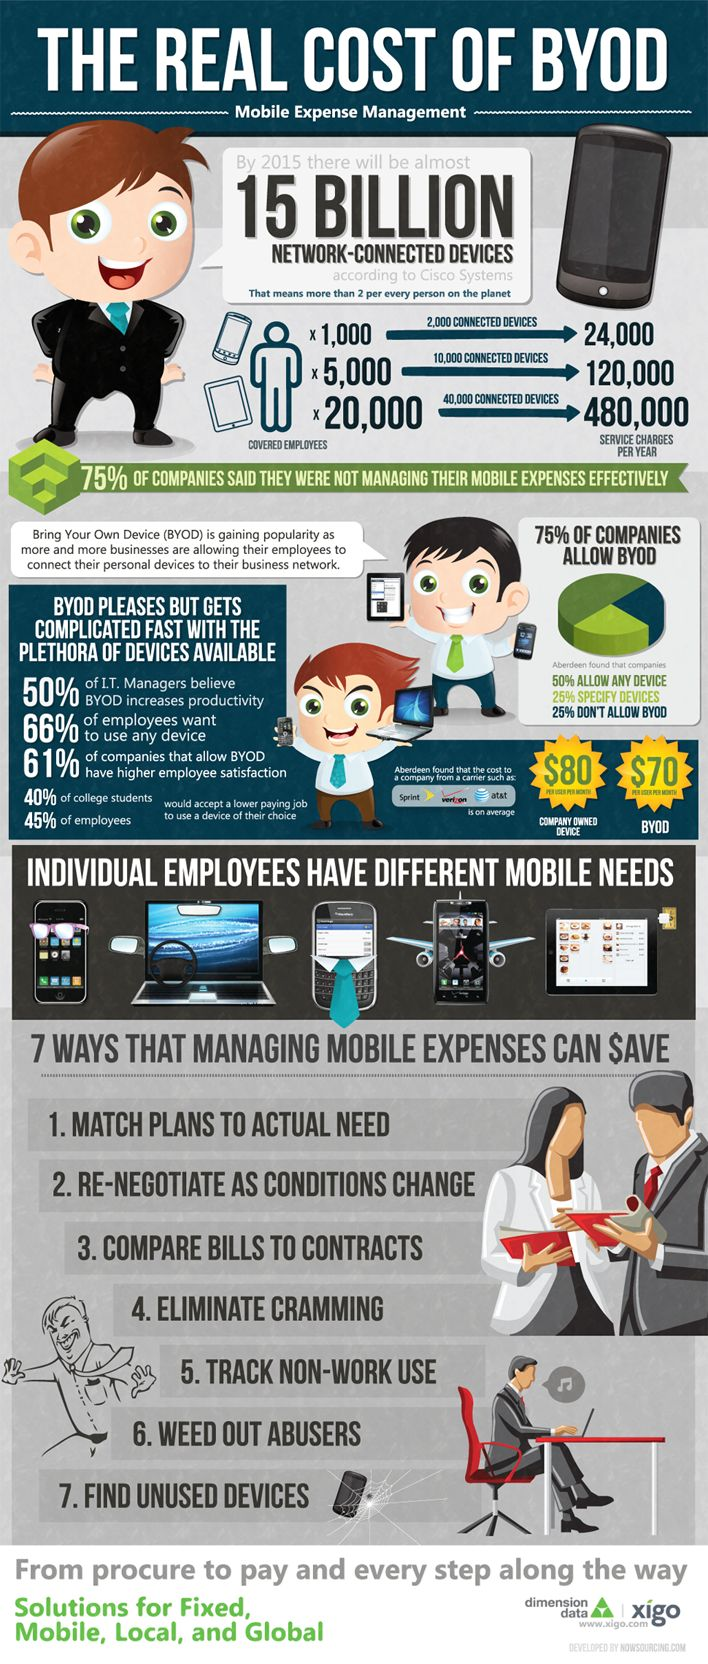 The Real Cost of BYOD - Infographic